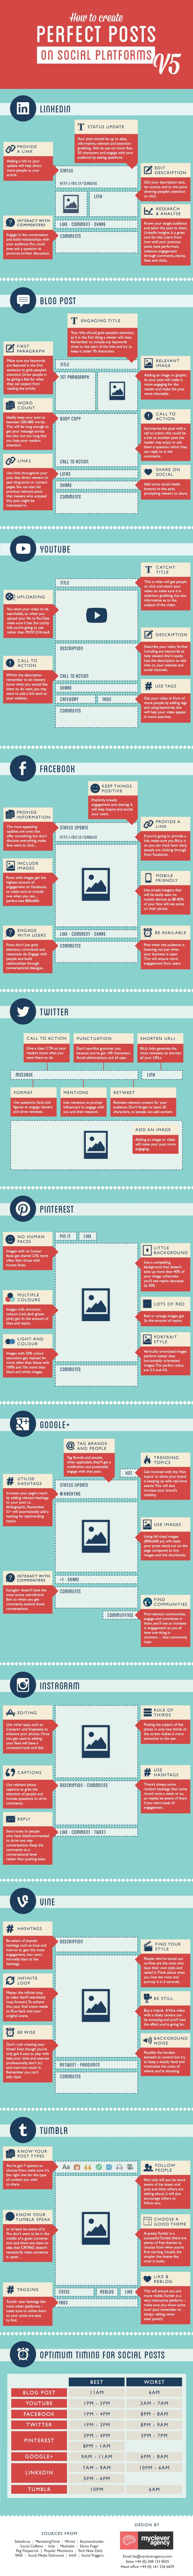 How to Create Perfect Posts on Every Social Media Platform #infographic